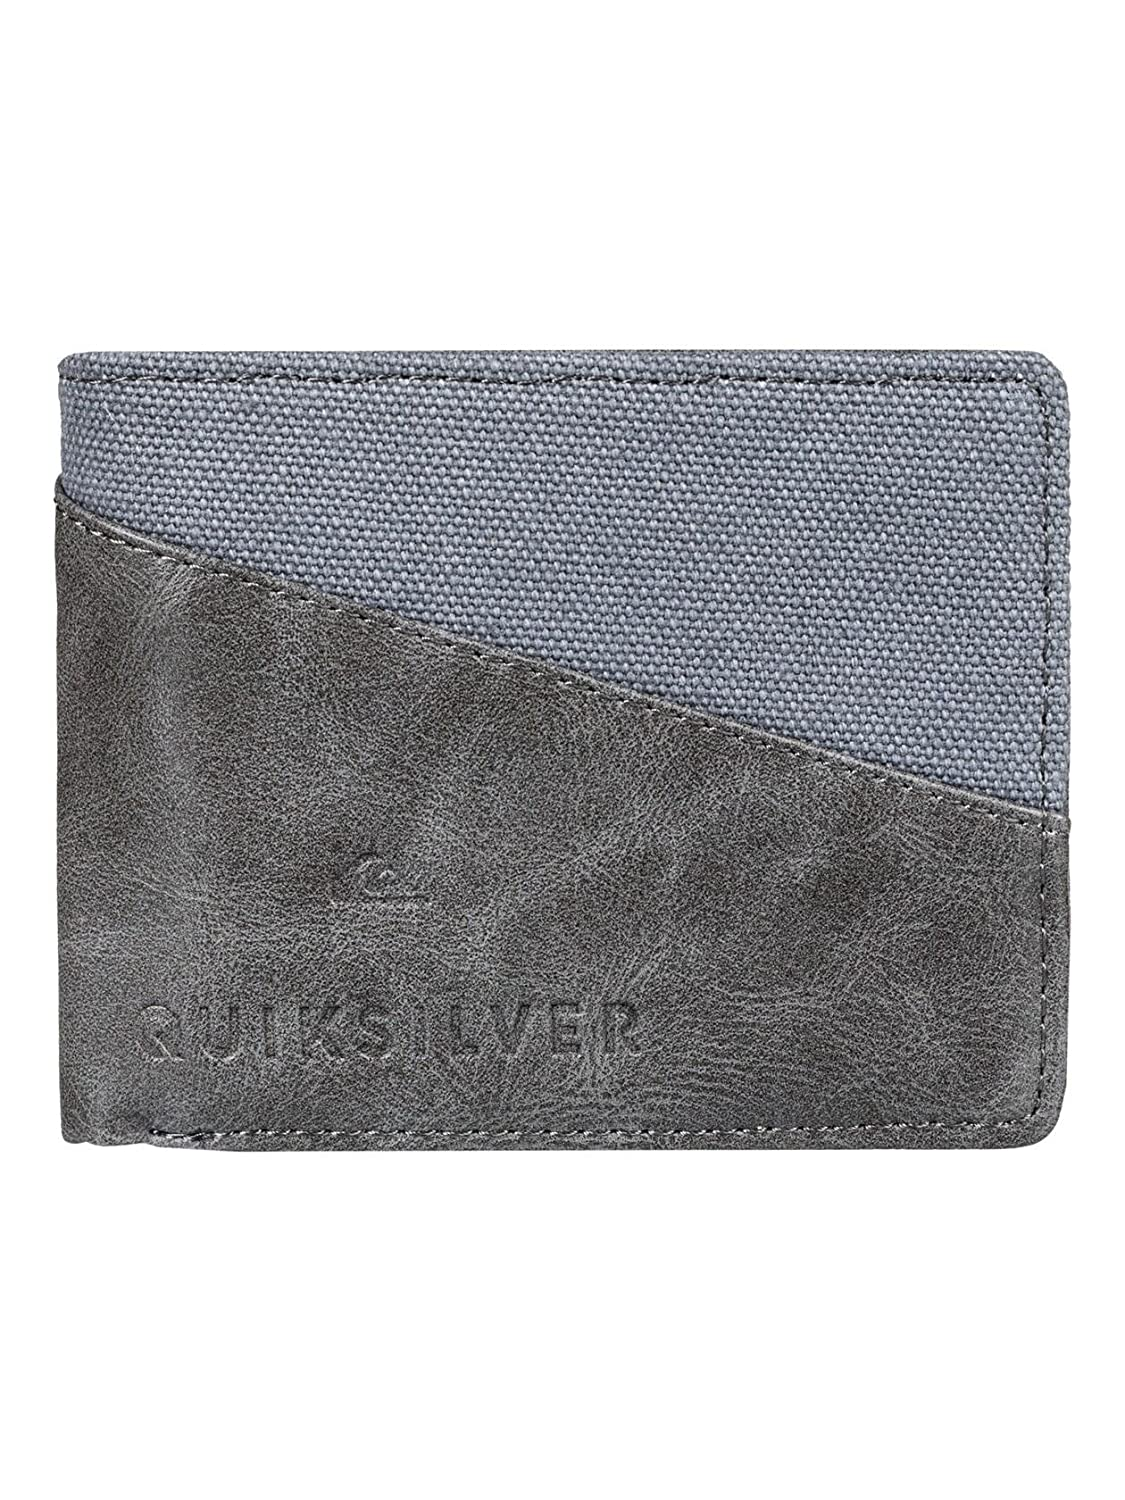 Quiksilver - Supplied - Monedero - Quiet Shade: Amazon.es ...